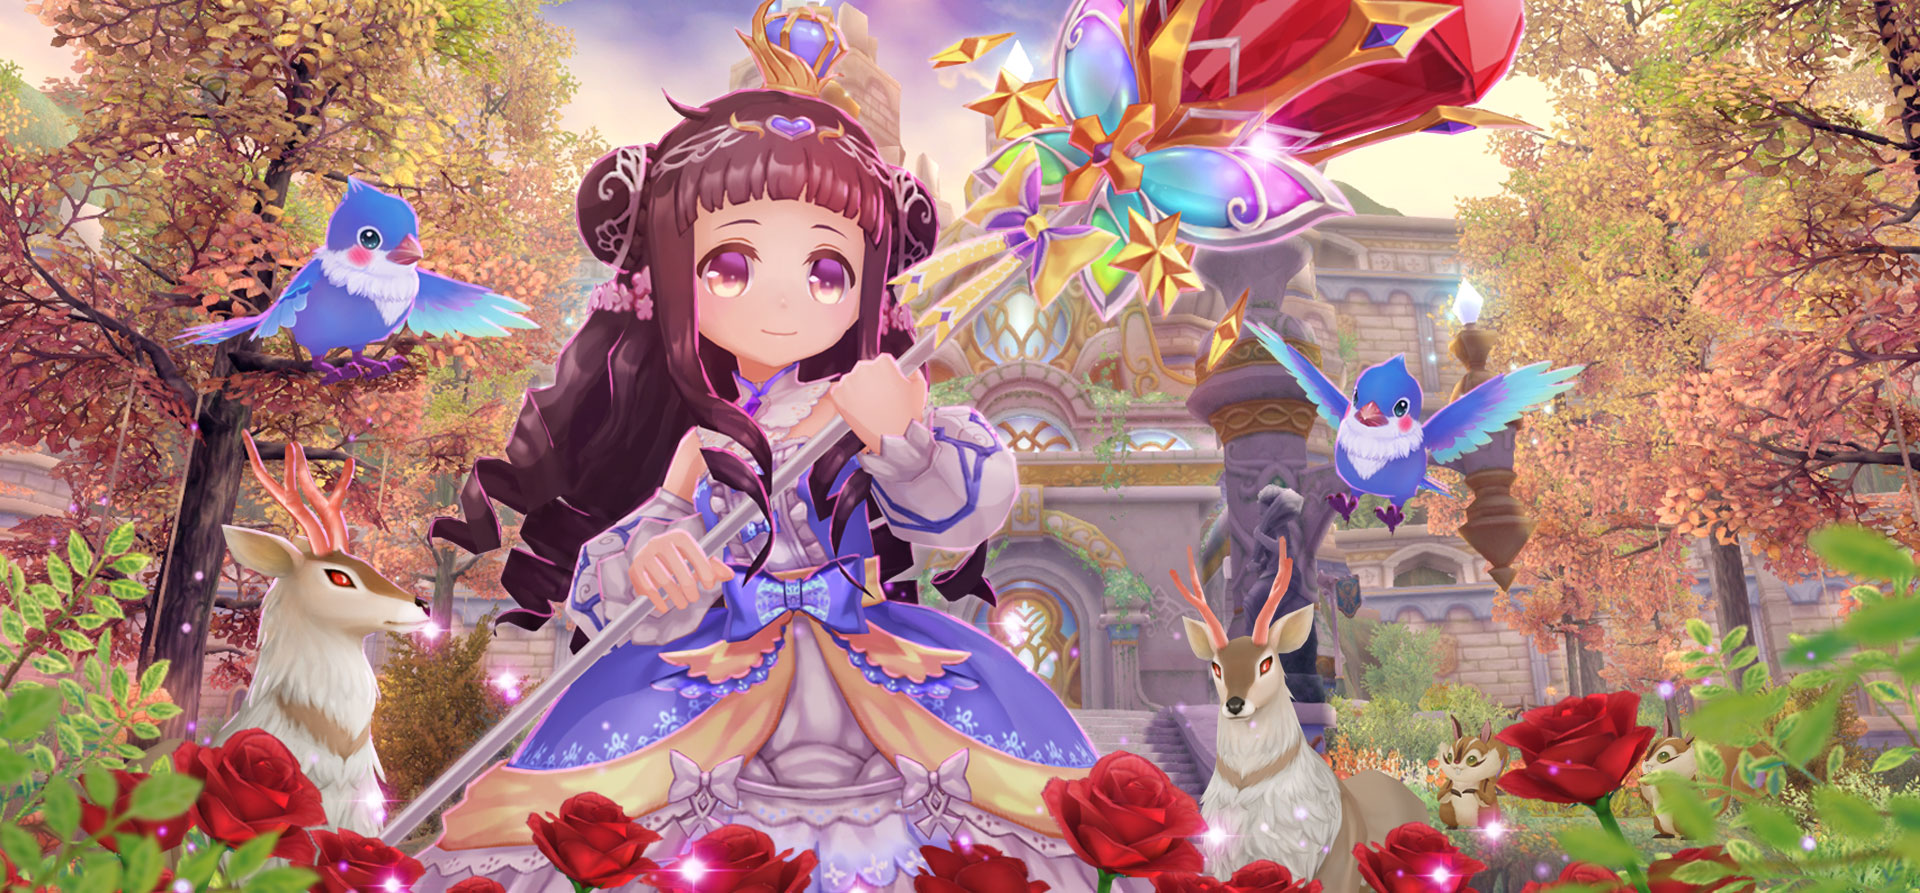 image - snow white wallpaper | aura kingdom wiki | fandom